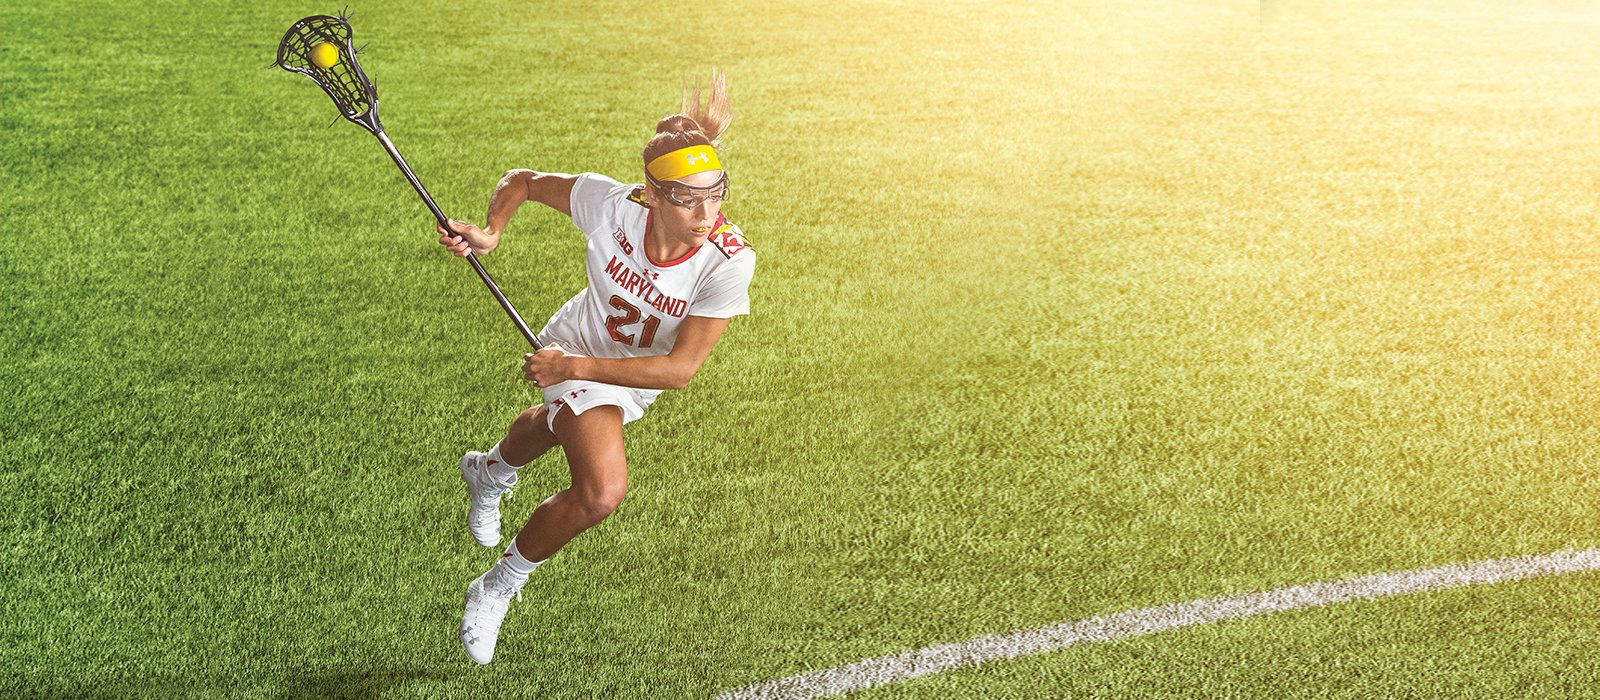 3fbab2a31 Under Armour Lacrosse | US | US